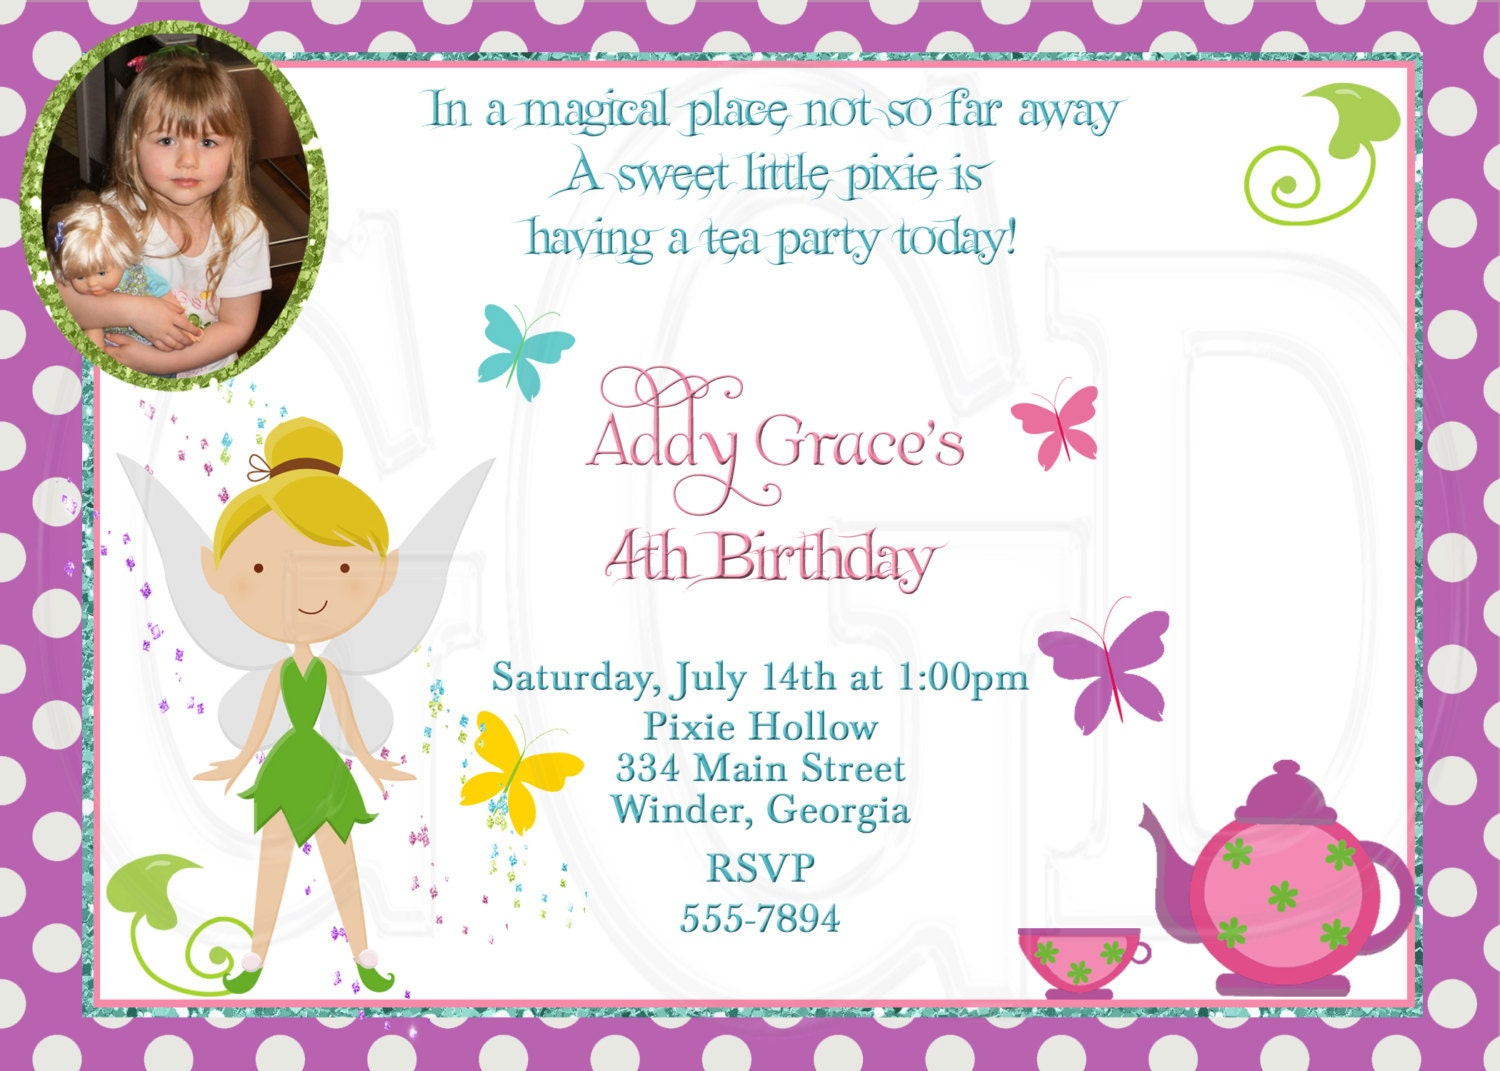 pixie hollow invite | etsy, Party invitations